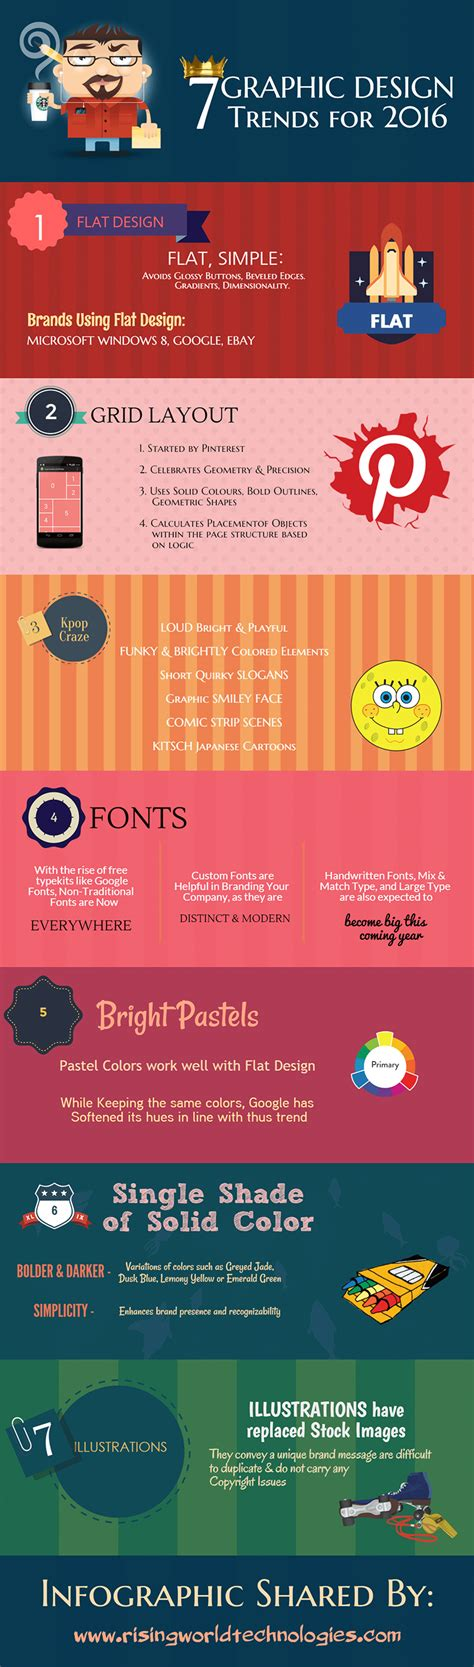 7 design trends from the last year with infographic 7 graphic design trends that will help your business stand